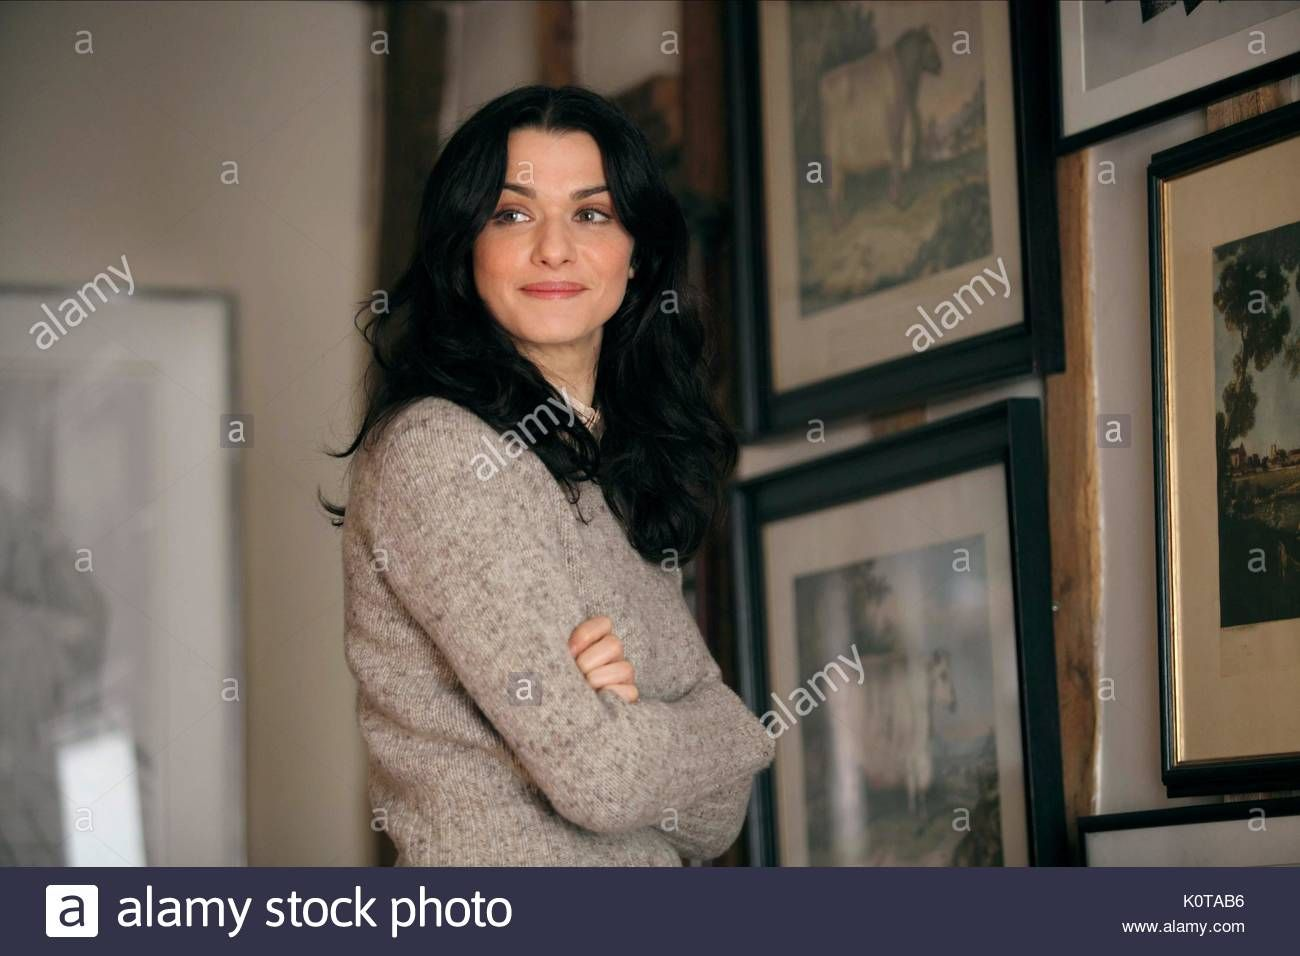 Download this stock image RACHEL WEISZ PAGE EIGHT (2011